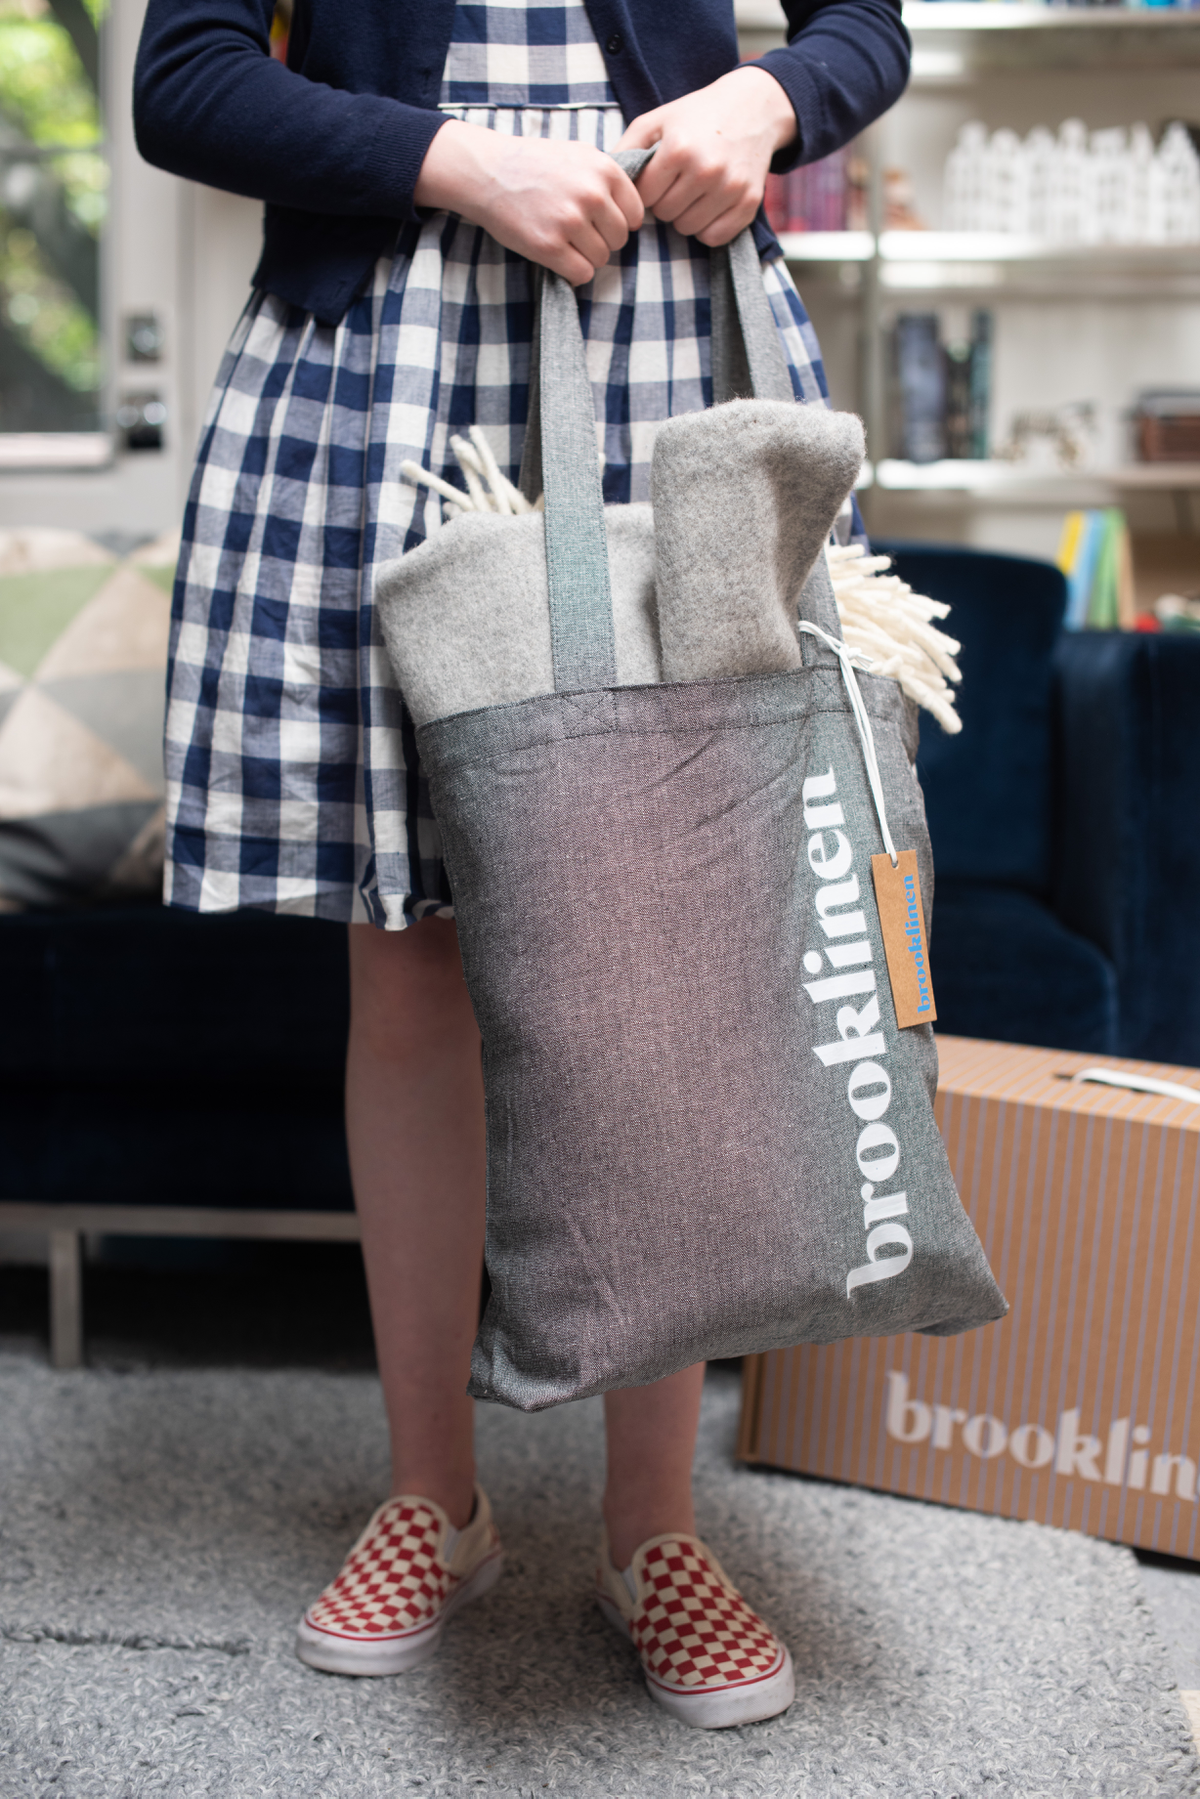 Brooklinen - The Best Sheets, Blankets & Towels You've Never Heard Of featured by popular lifestyle blogger, Design Mom